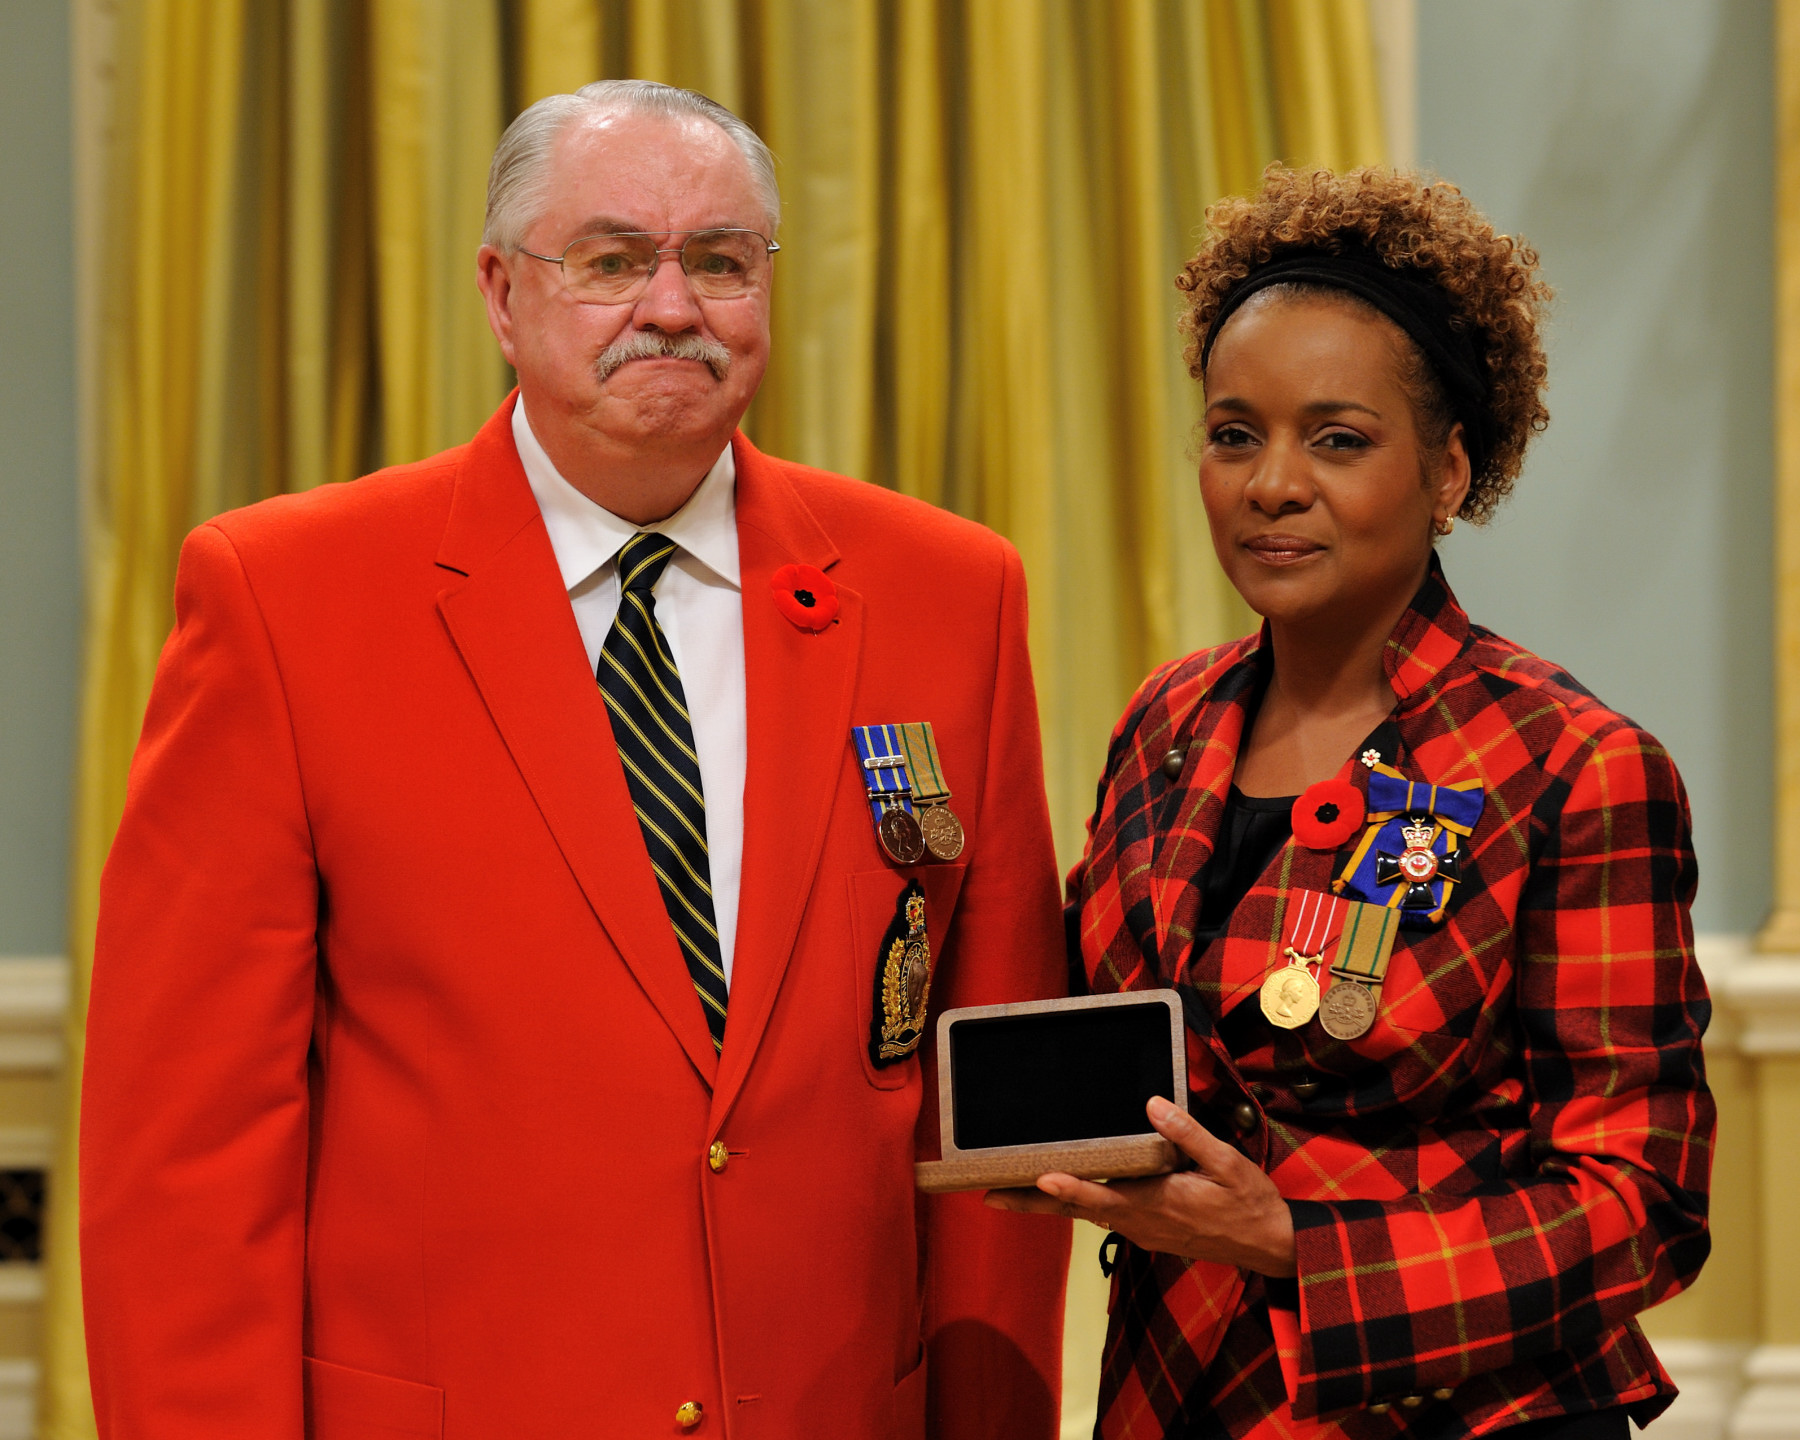 Her Excellency the Right Honourable Michaëlle Jean, Commander-in-Chief of Canada, presented the Sacrifice Medal to Ben Walsh, father of Master Corporal Jeffrey Scott Walsh , who was honoured posthumously.